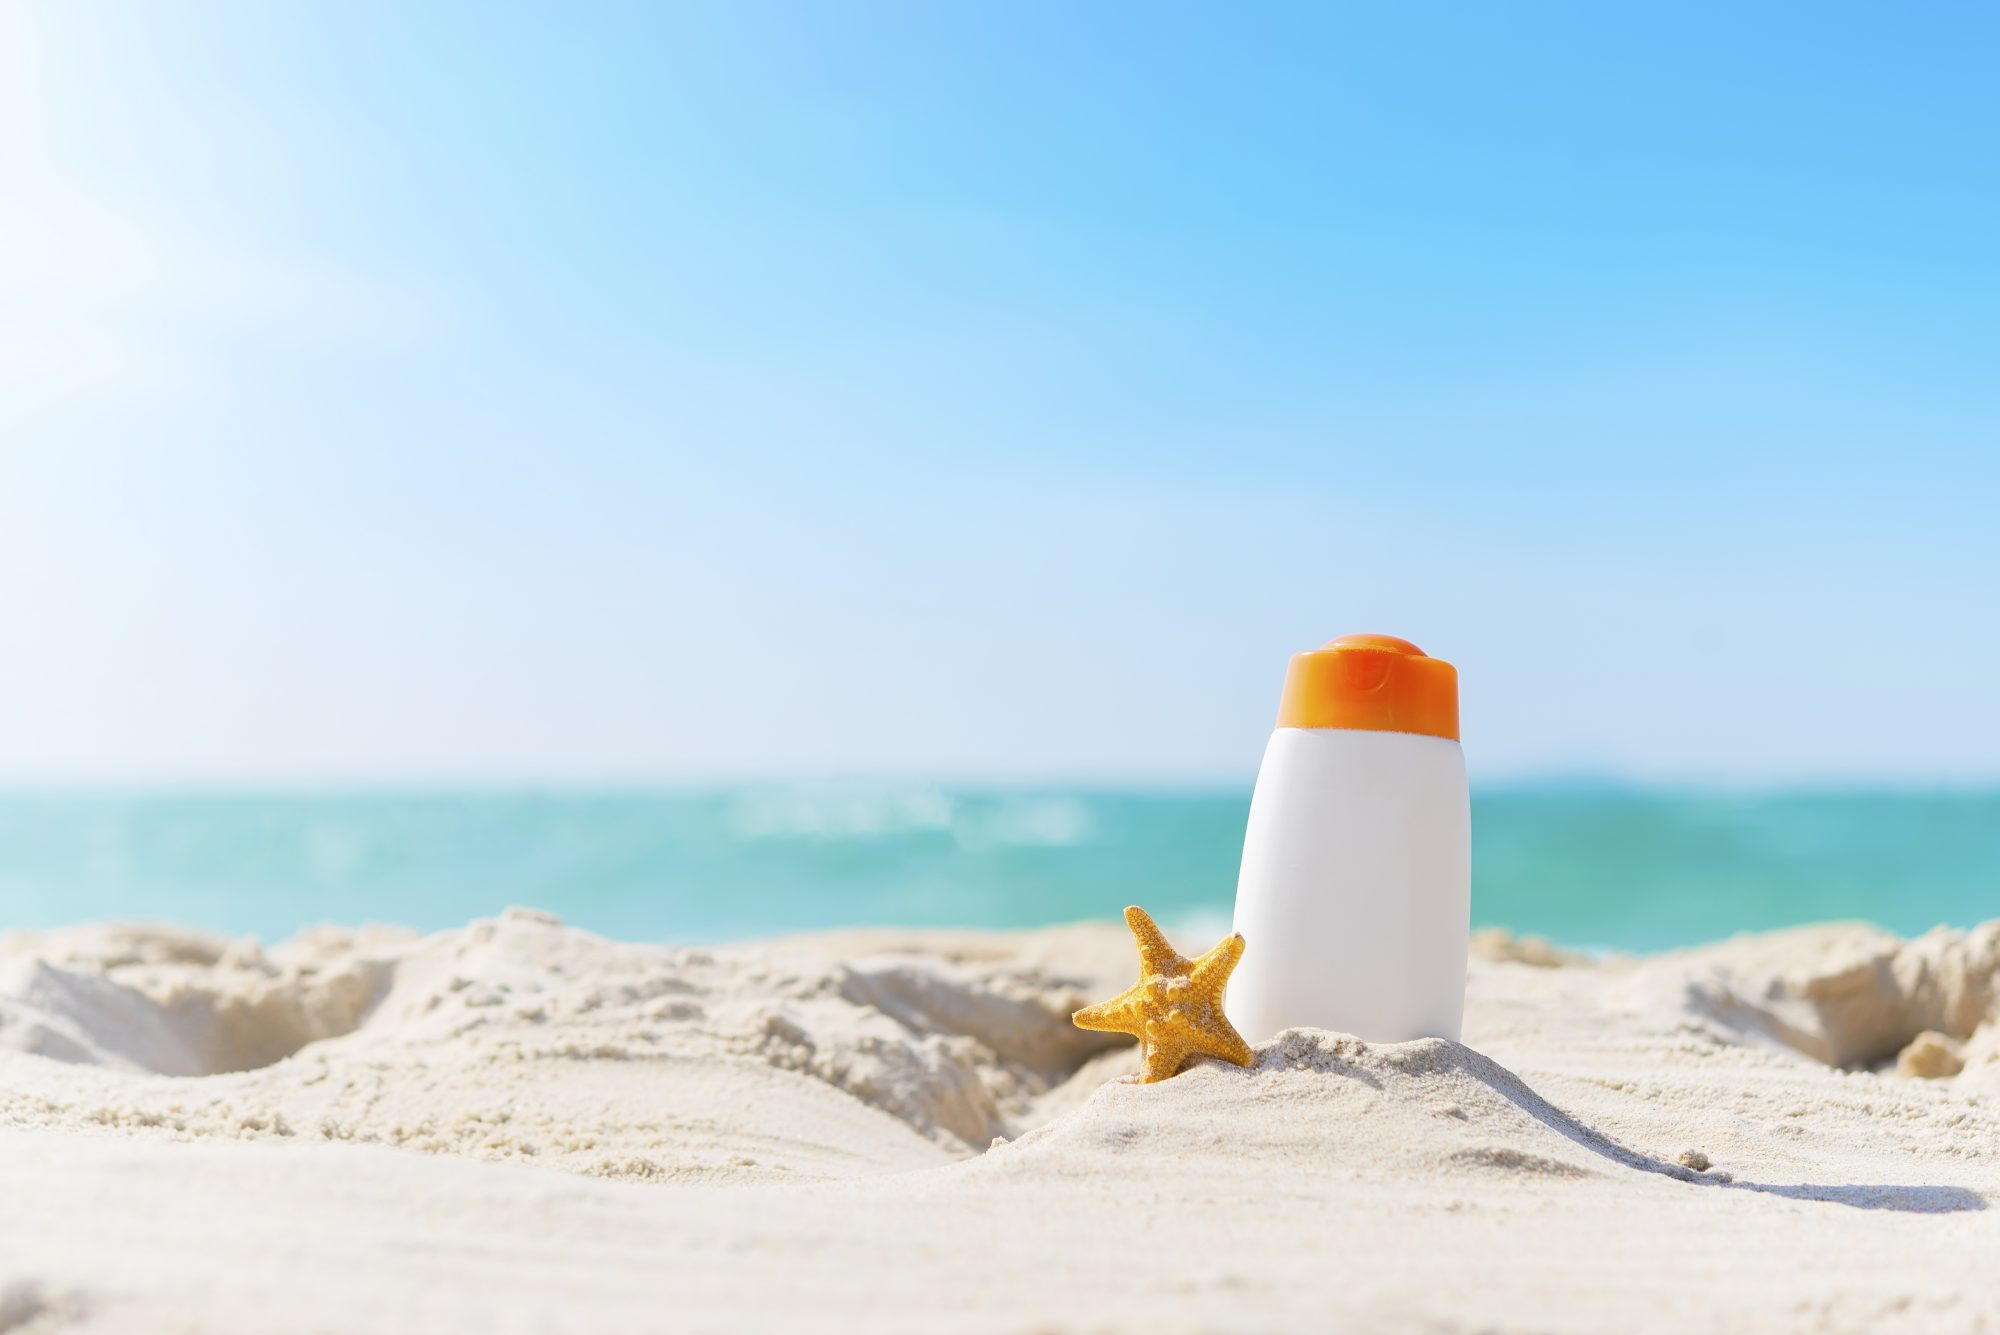 Sunscreen Tube and Starfish on Beach